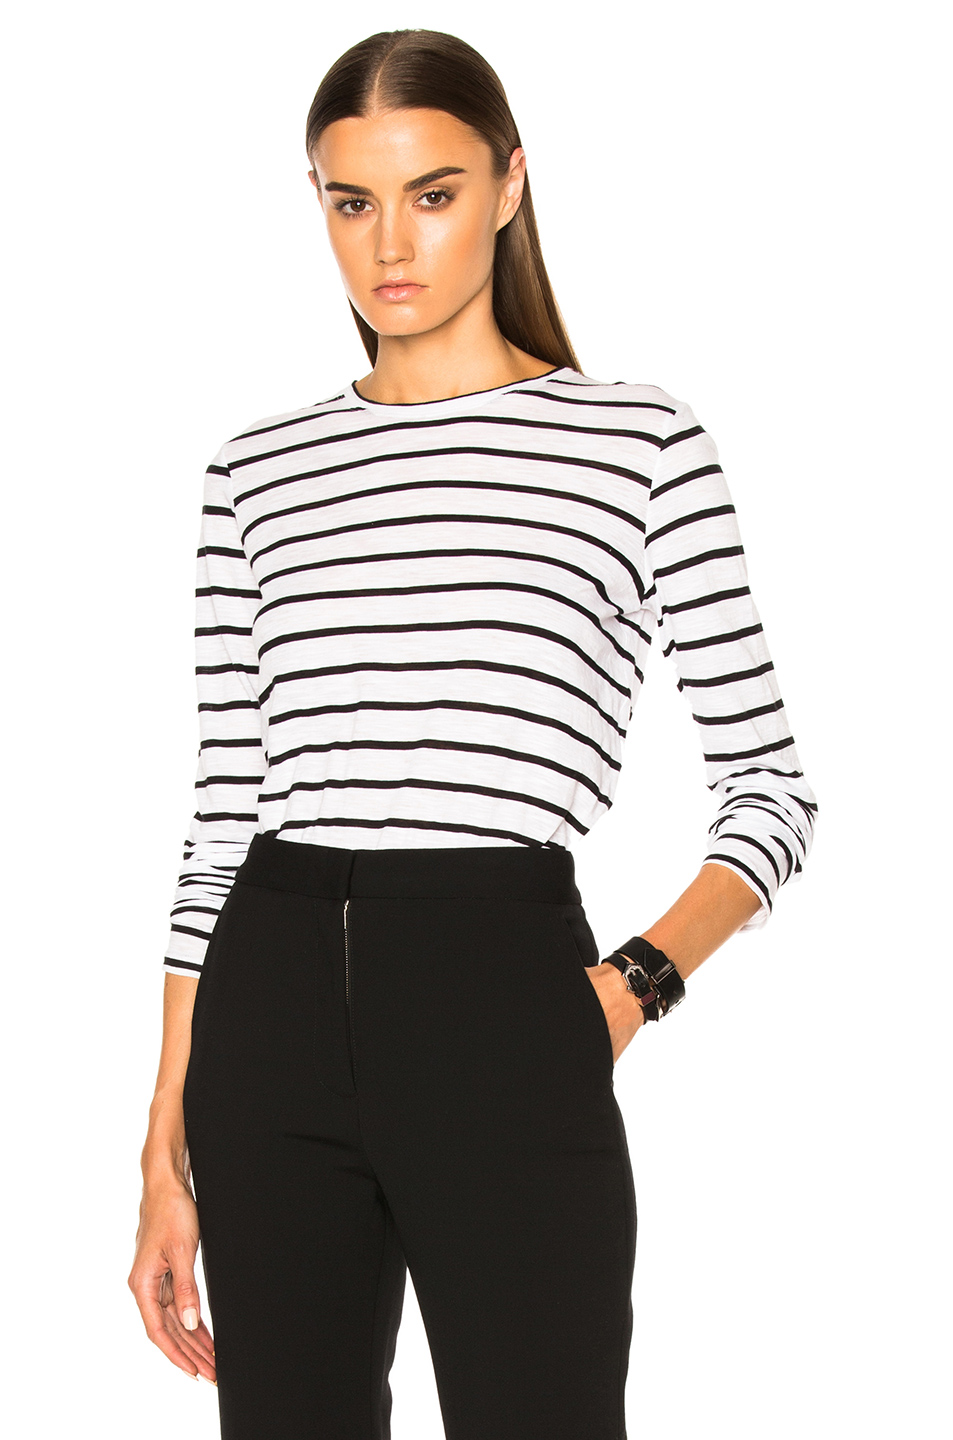 Proenza Schouler Tissue Jersey Long Sleeve Tee in White,Stripes